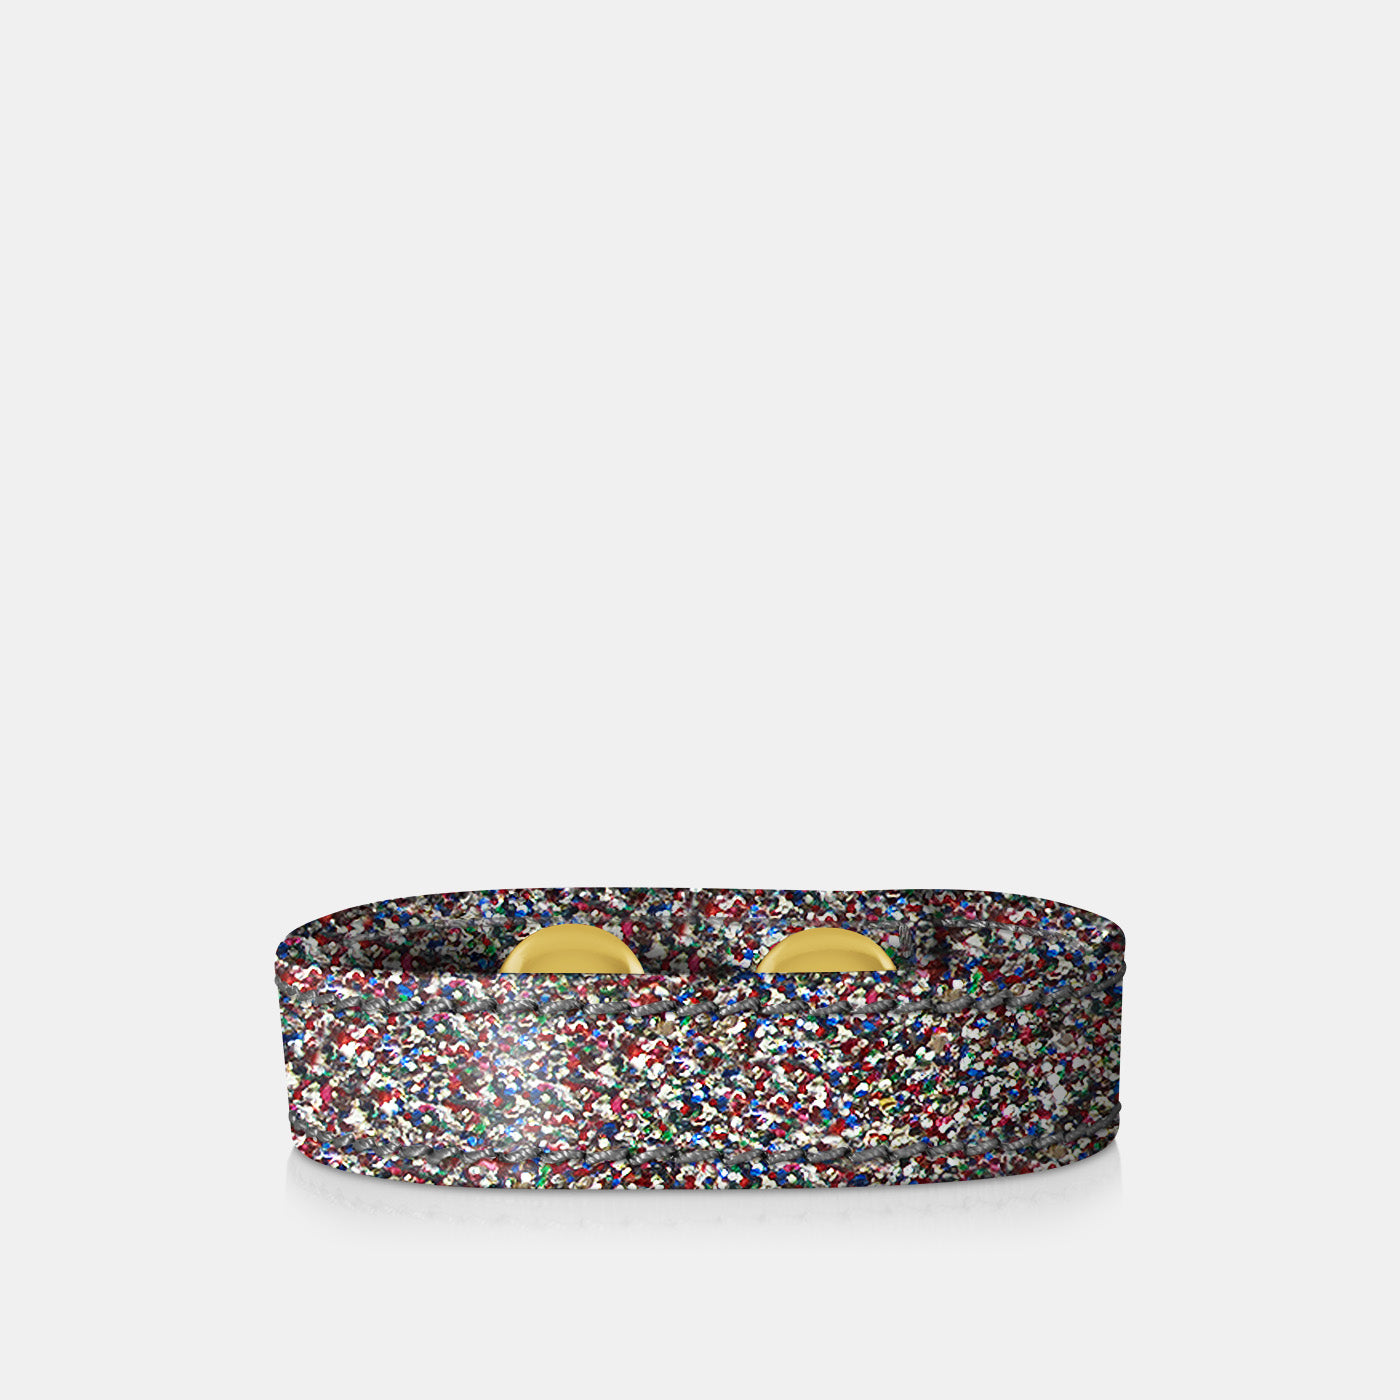 Sparkling Bracelet - Pop Bag USA